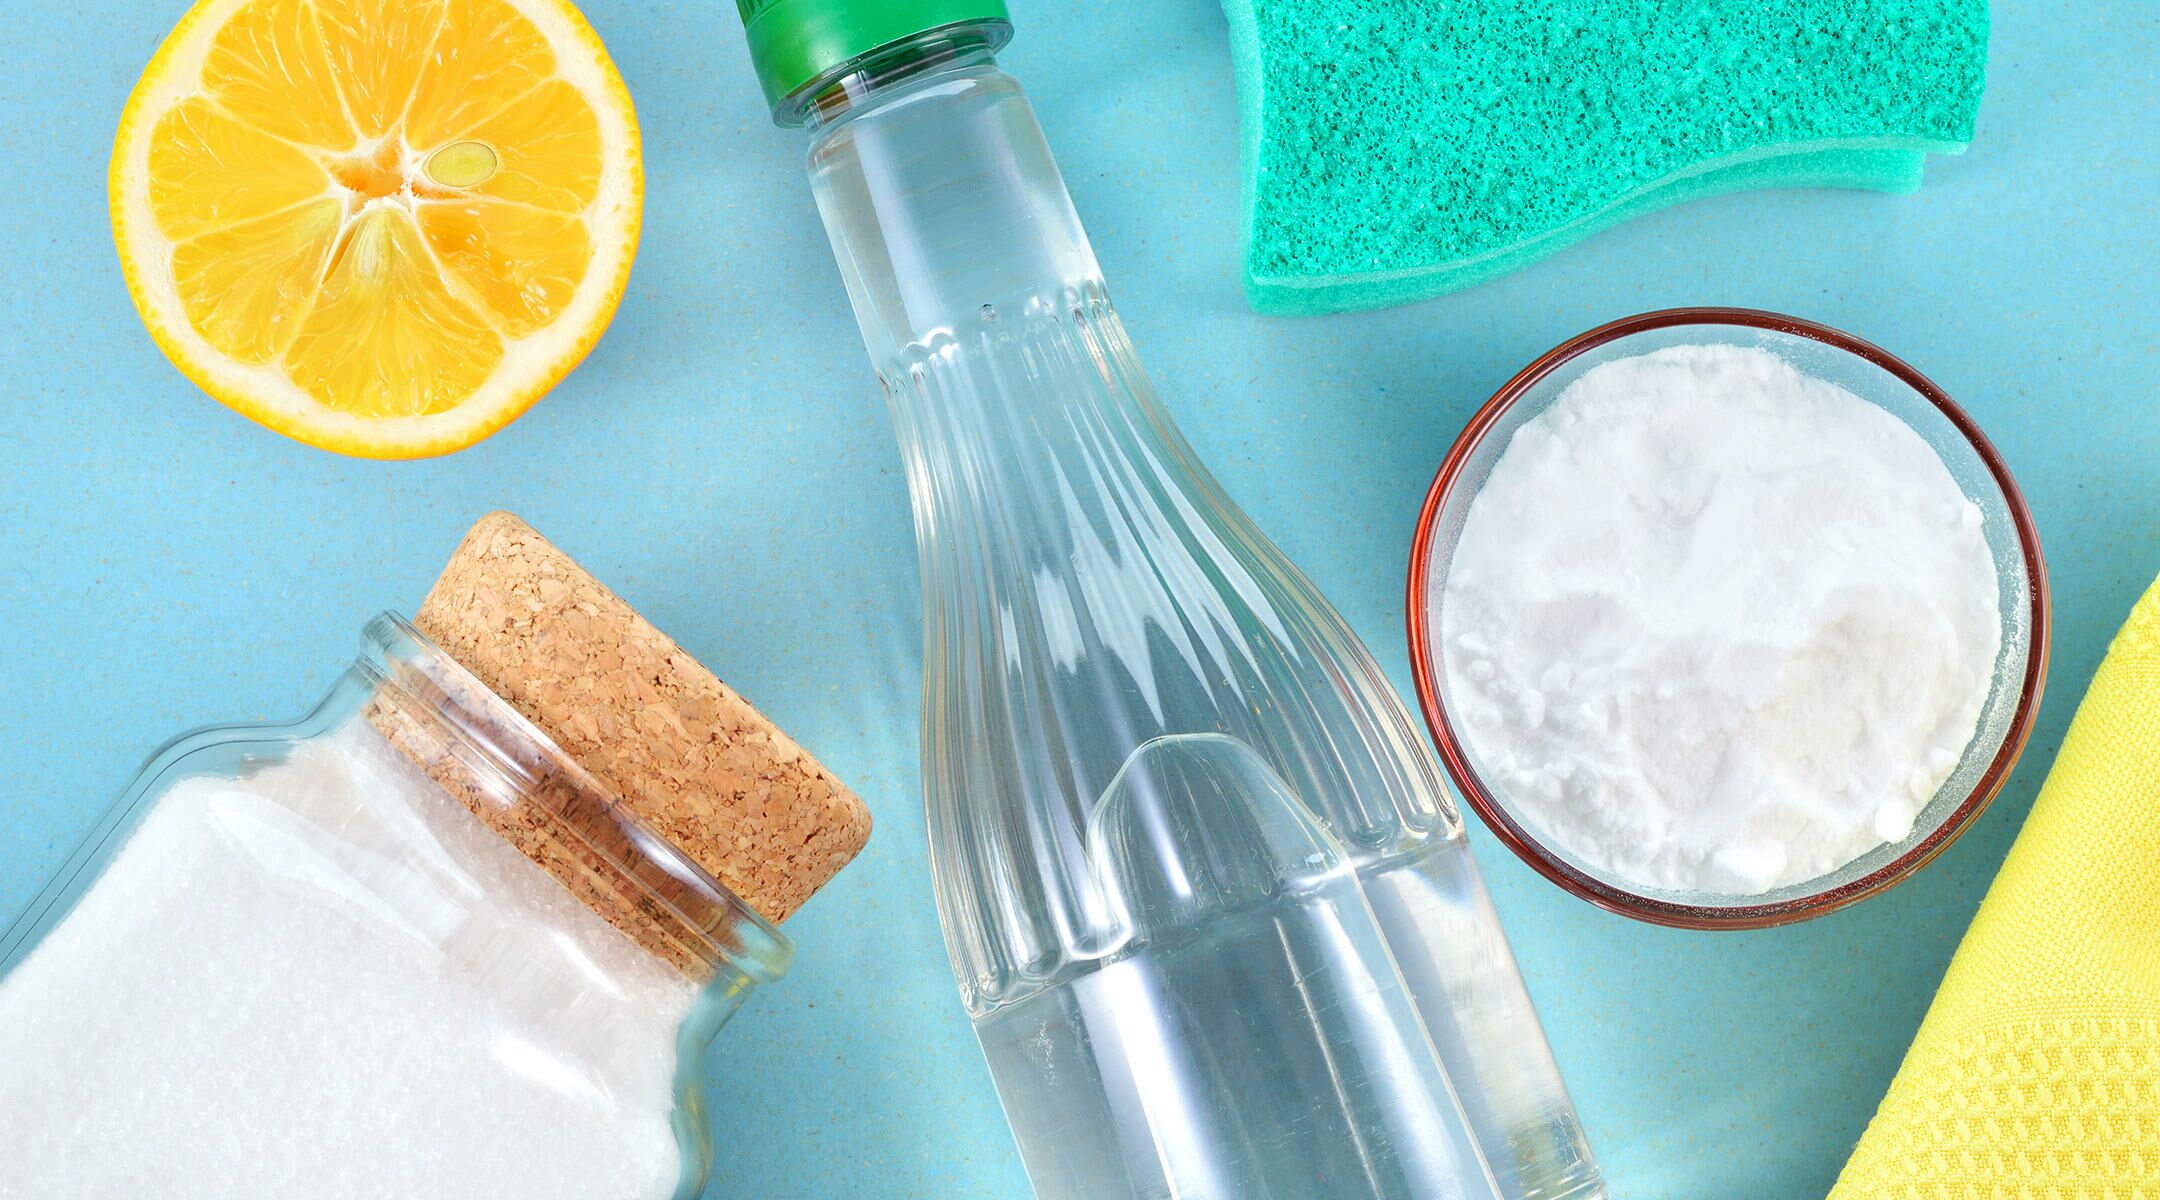 9 Eco-Friendly Cleaning Products You Can Make at Home